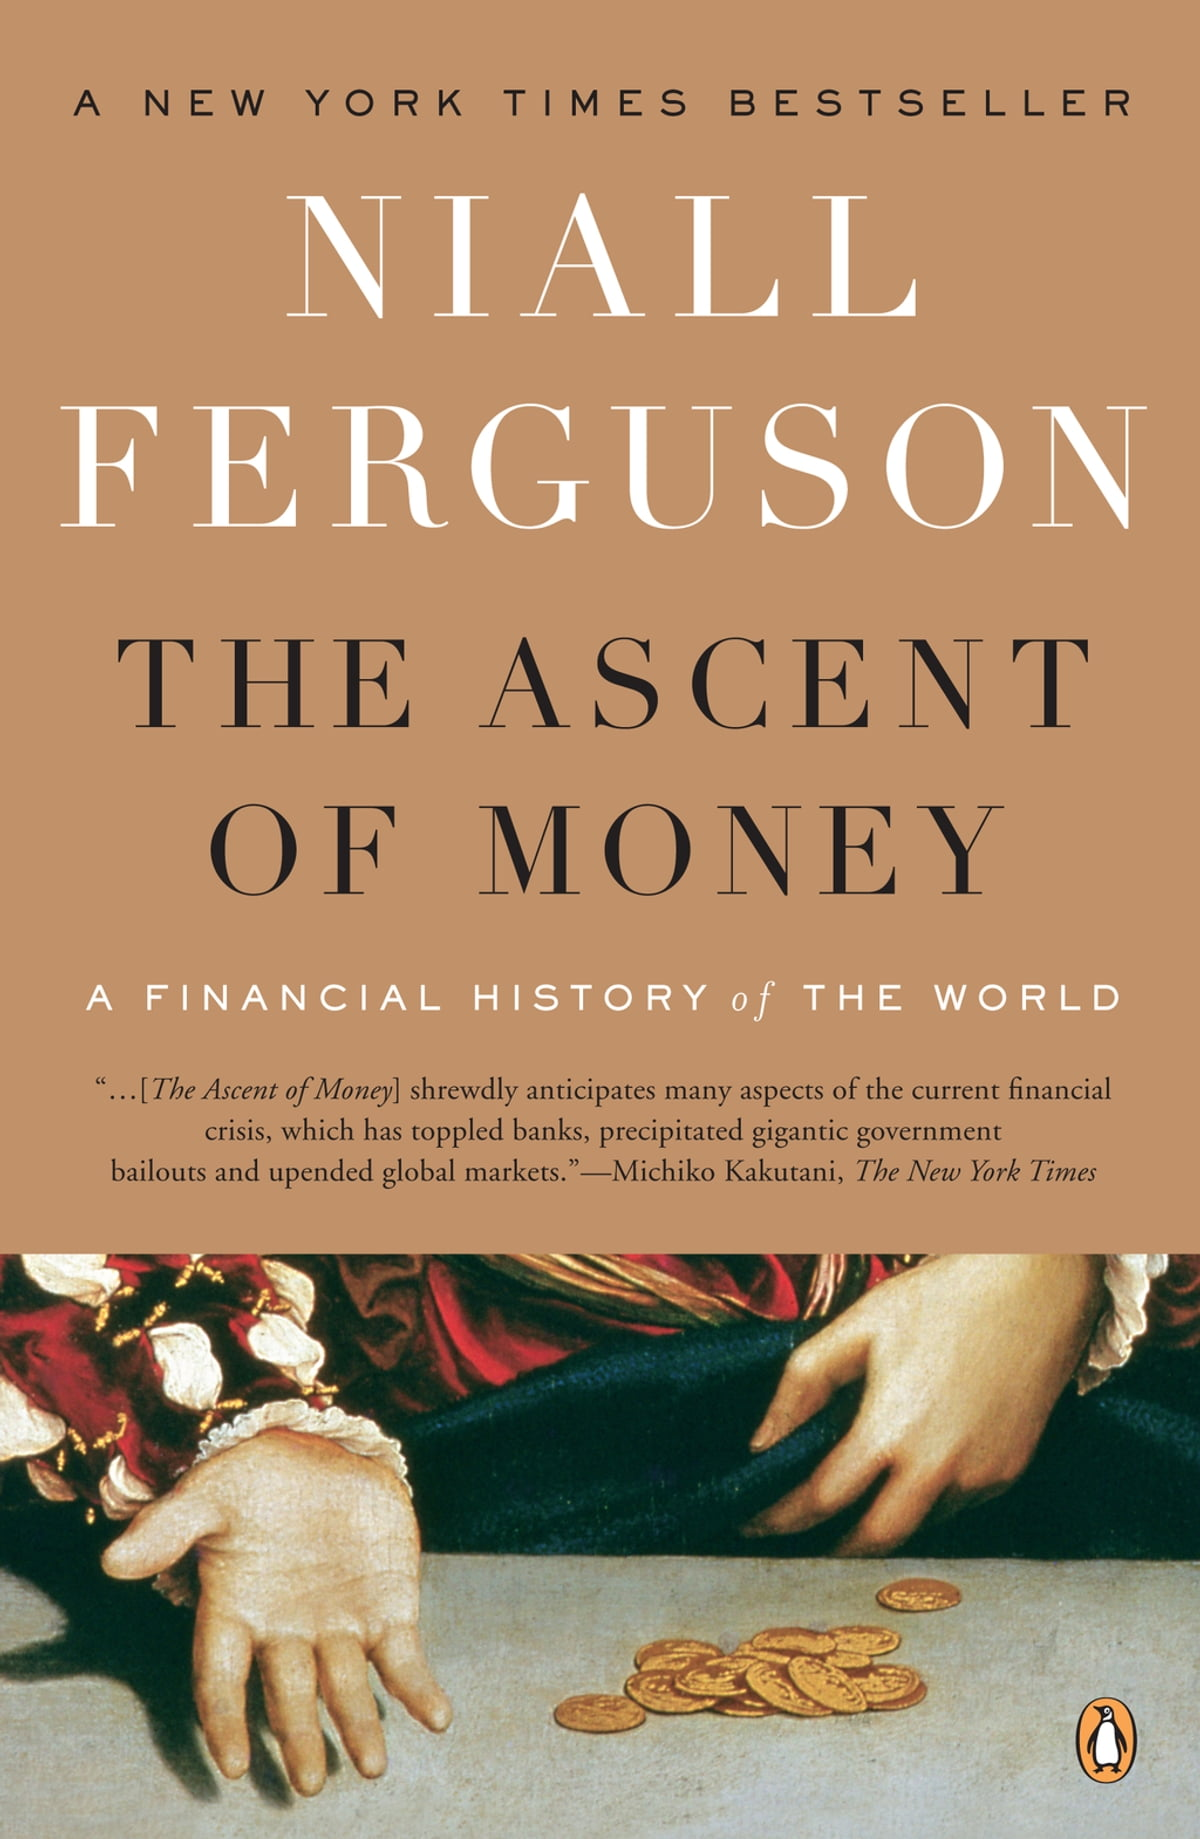 The Ascent Of Money Ebook By Niall Ferguson  9781440654022  Rakuten Kobo